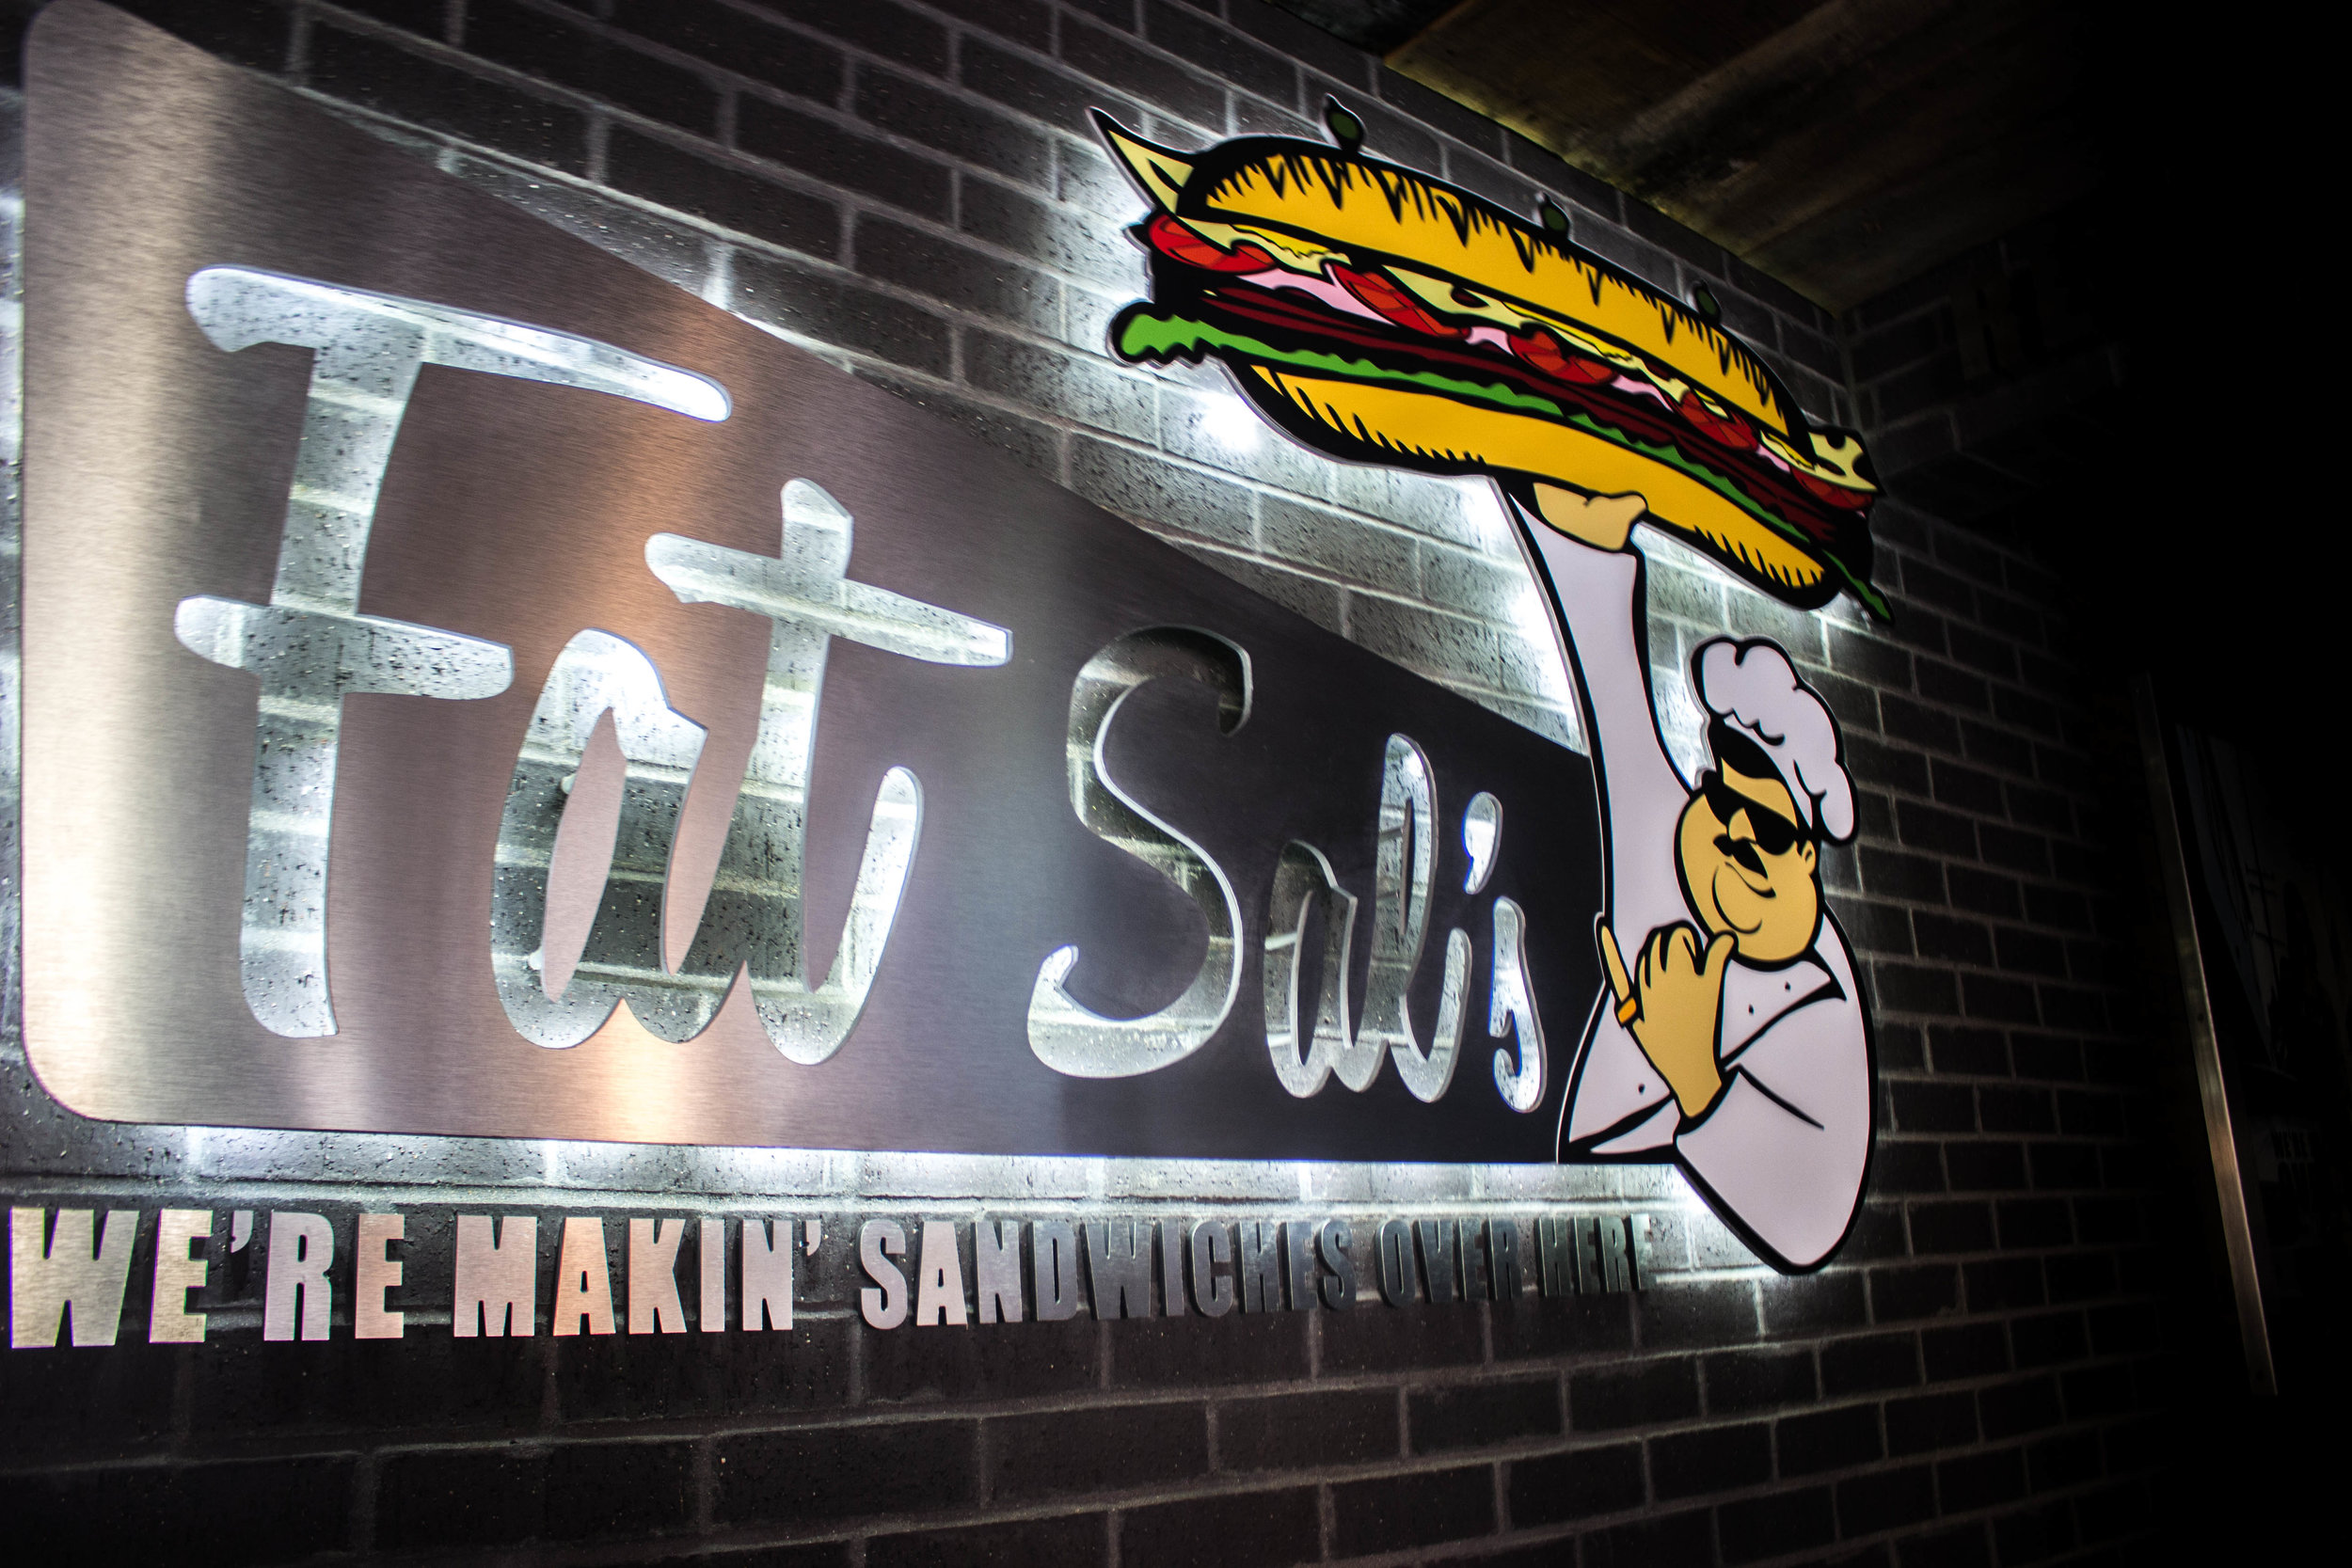 Fat Sal's is located near the corner of 26th St. and Guadalupe St.